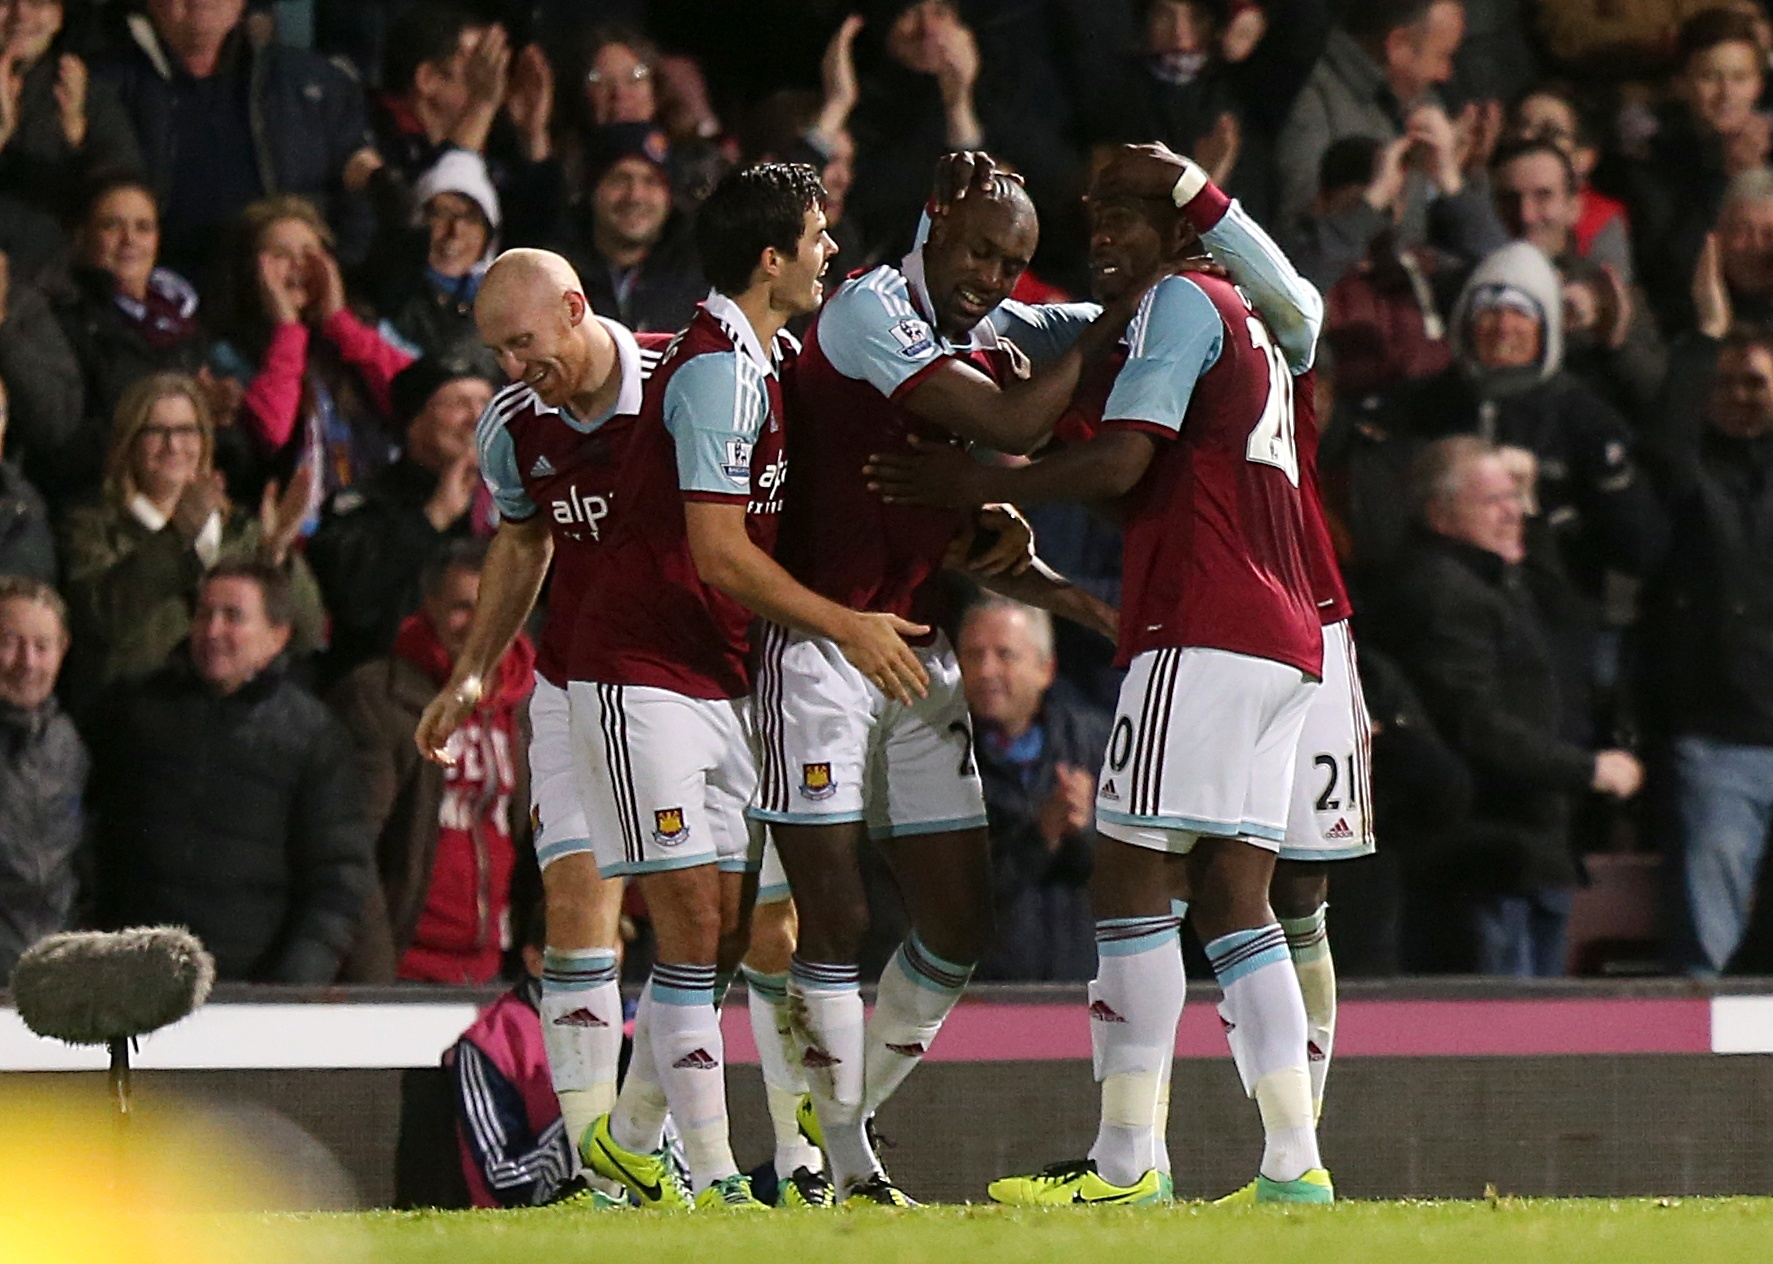 West Ham United gained a crucial win: Action Images